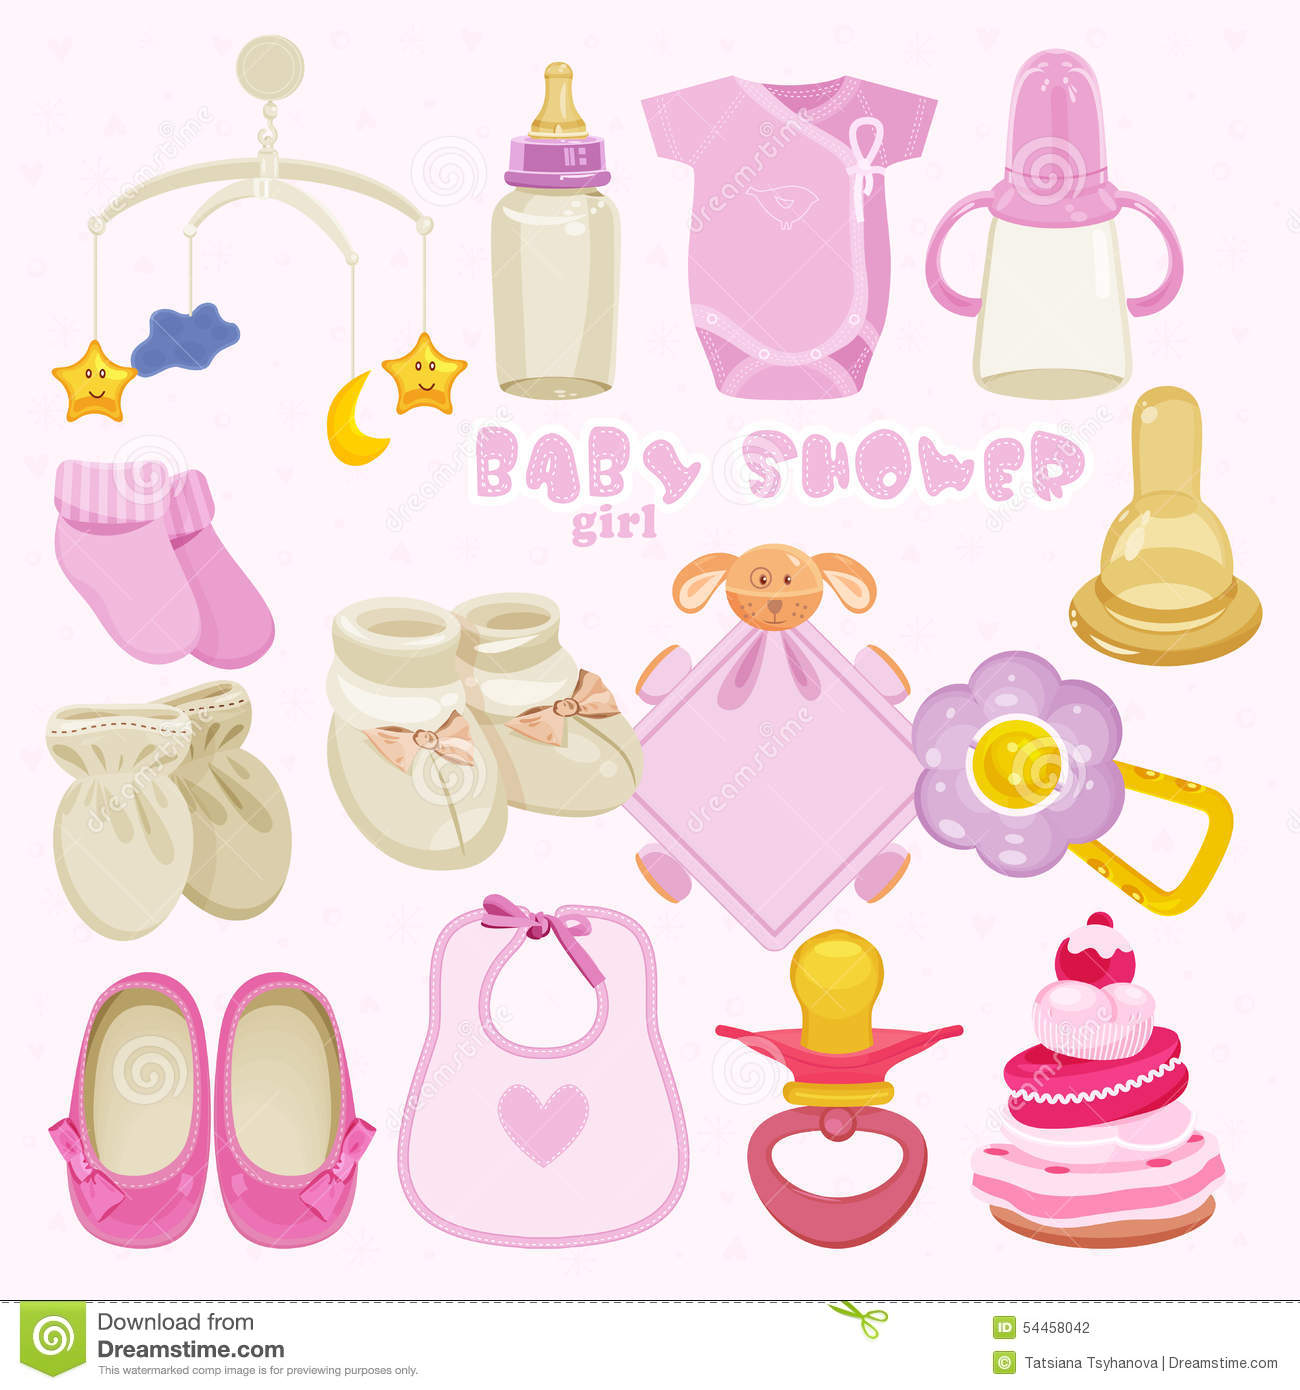 Choose the Gender of Your Baby using artificial or natural.